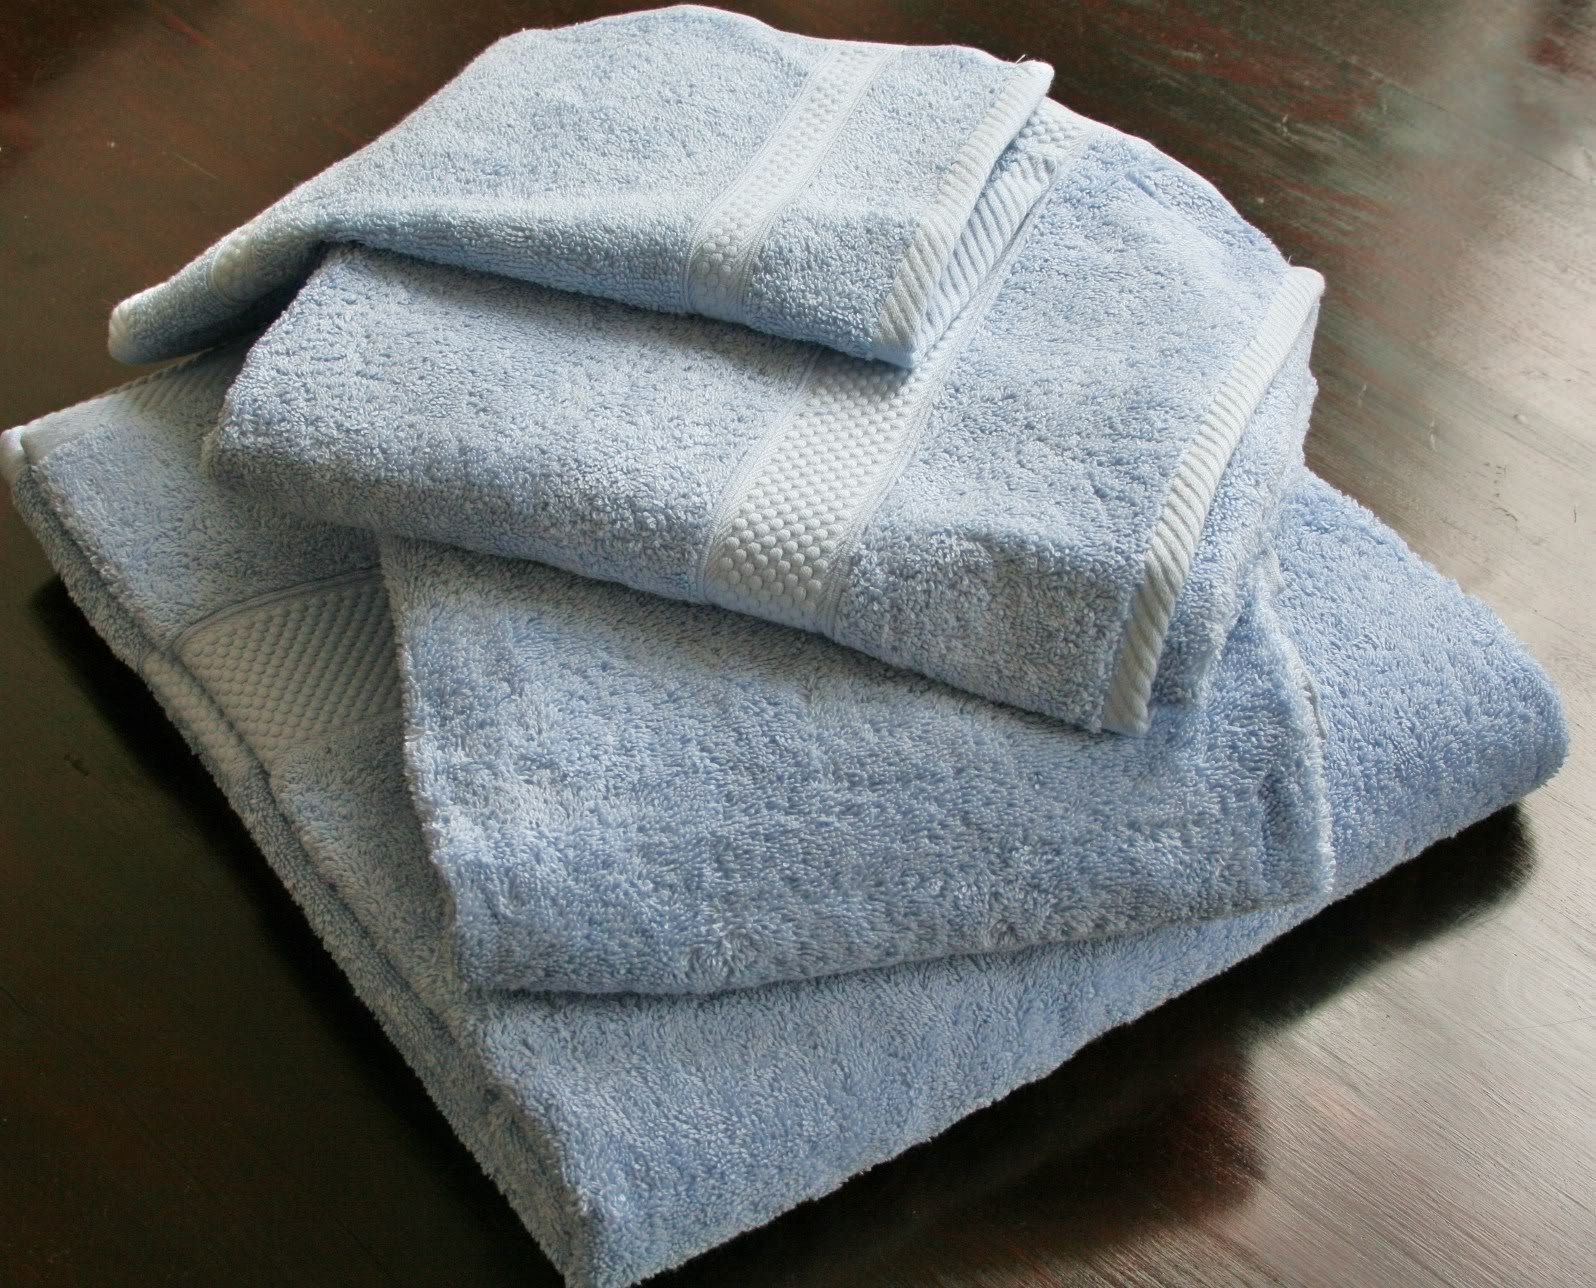 Homescapes Turkish Cotton 4 Piece Bath Towel Set Light Blue Very Soft and Absorbent, 500 GSM Heavy Weight for everyday Luxury ... by Homescapes by Homescapes